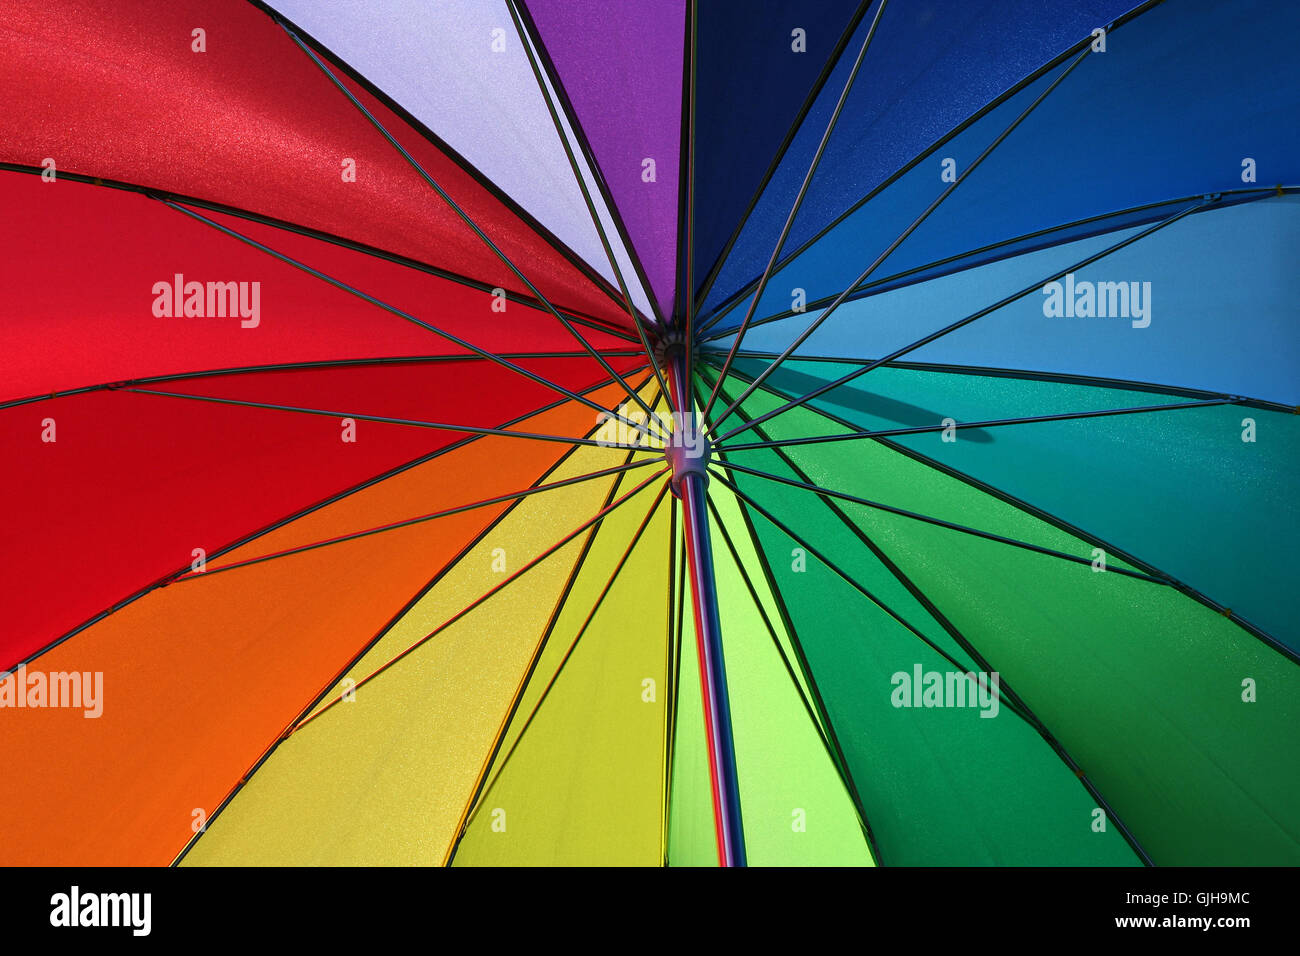 play of colors - Stock Image